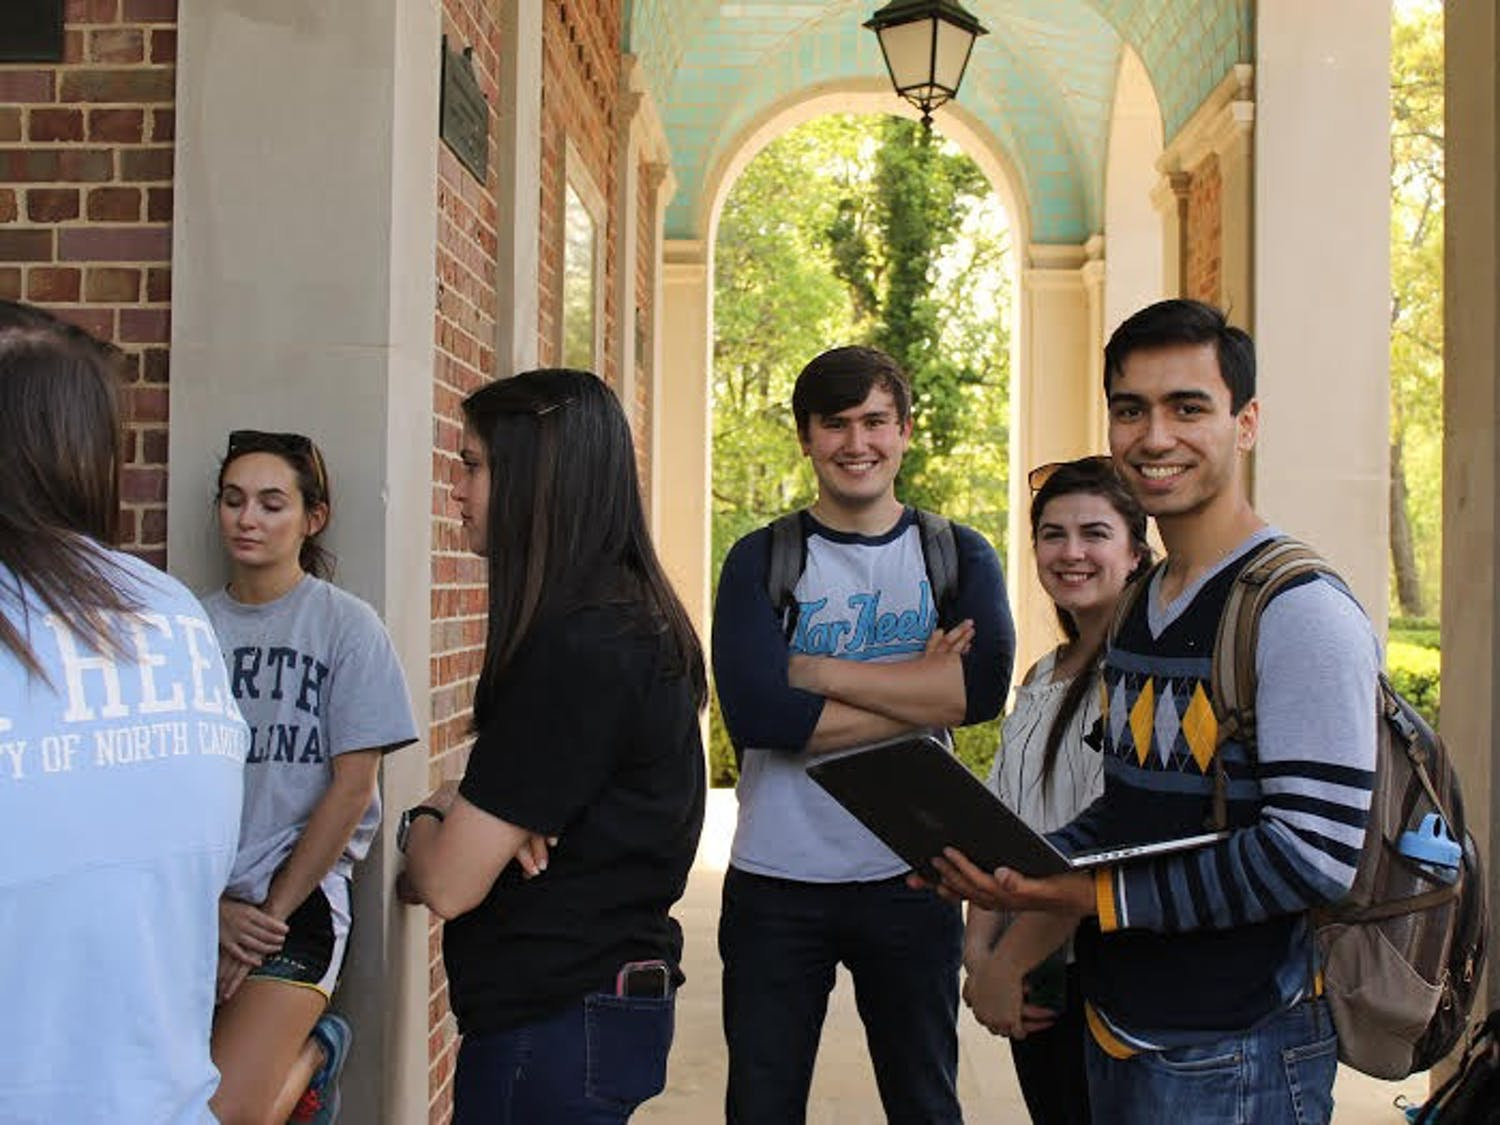 Seniors wait in line to take part in the tradition of climbing Morehead-Patterson Bell Tower on April 18.